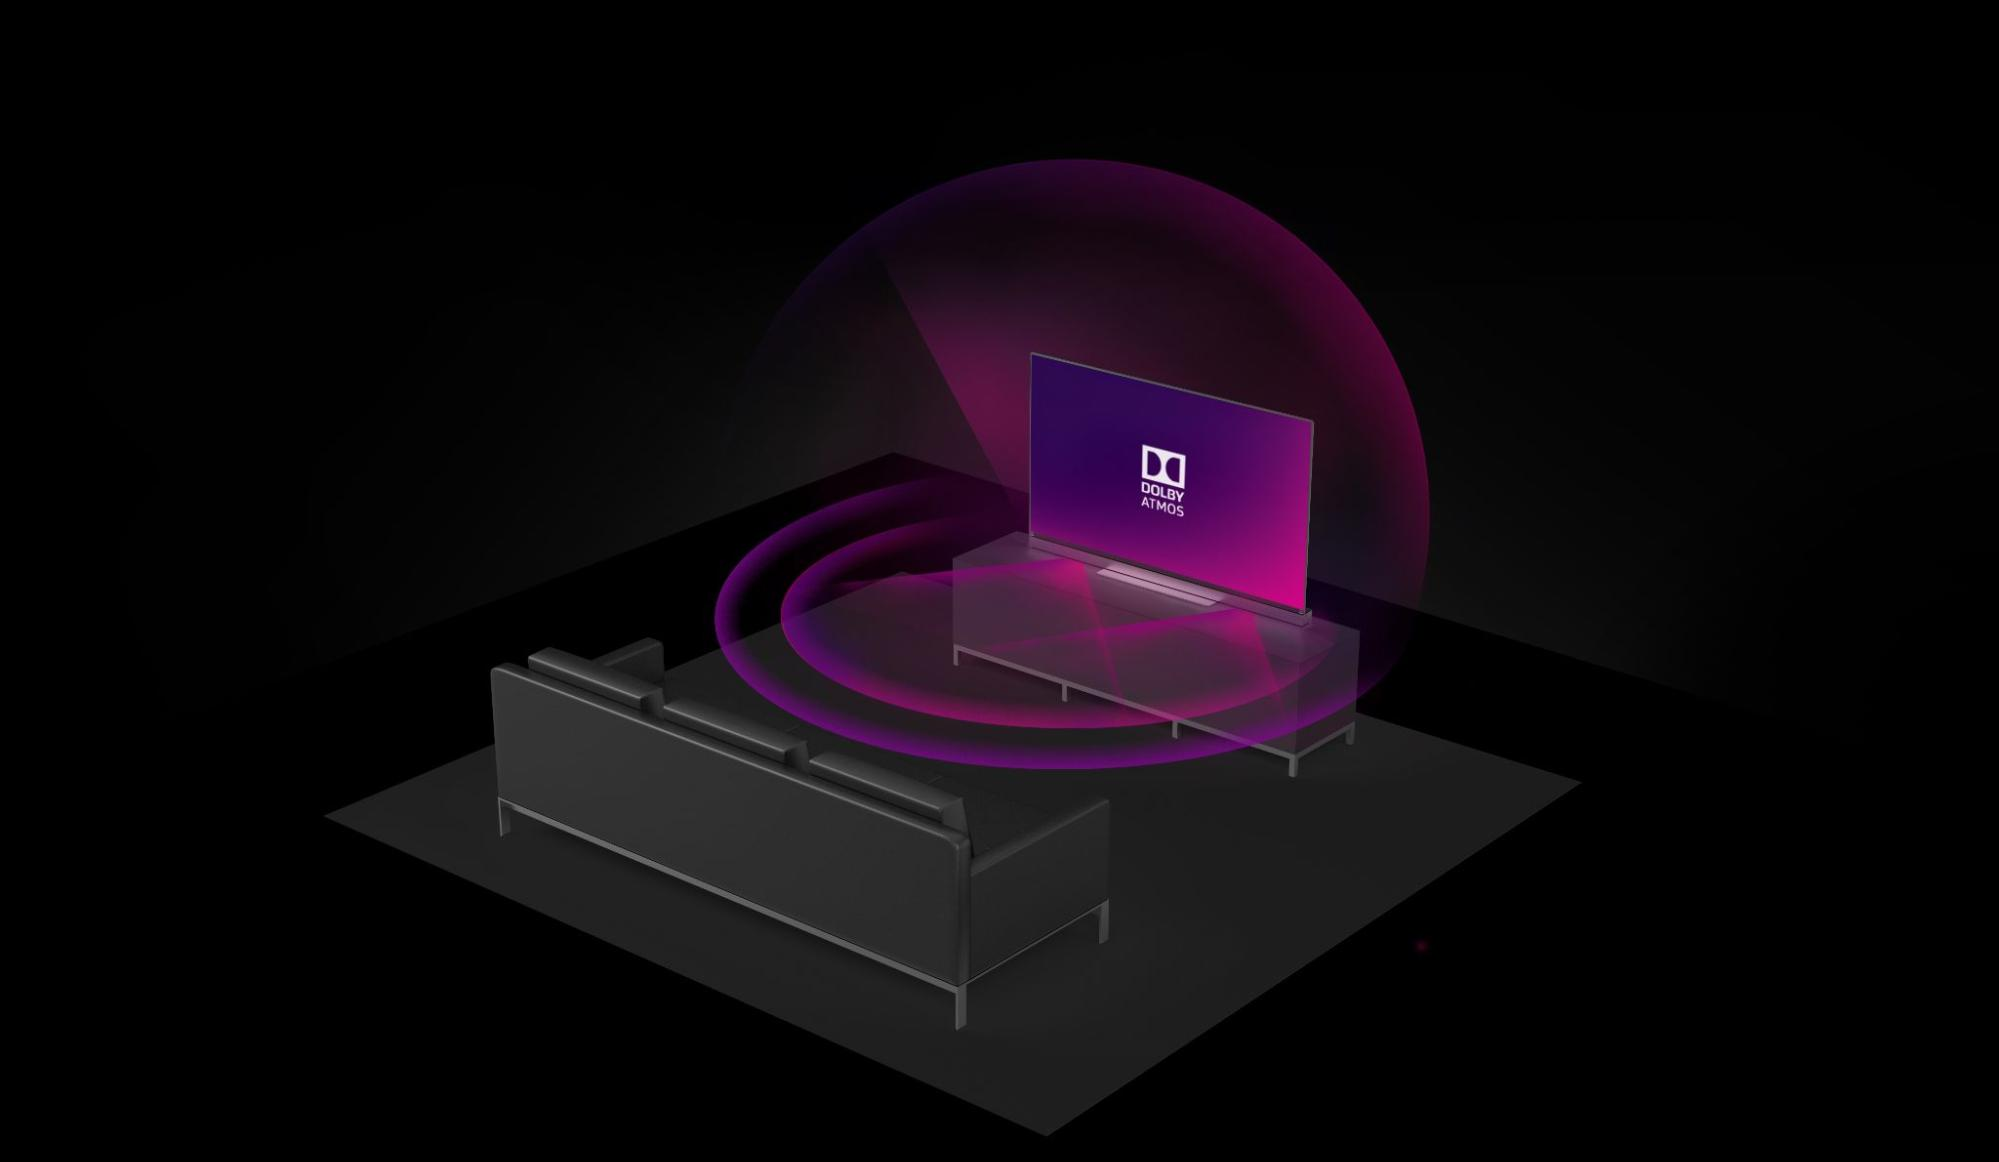 How to Play Dolby Atmos Music